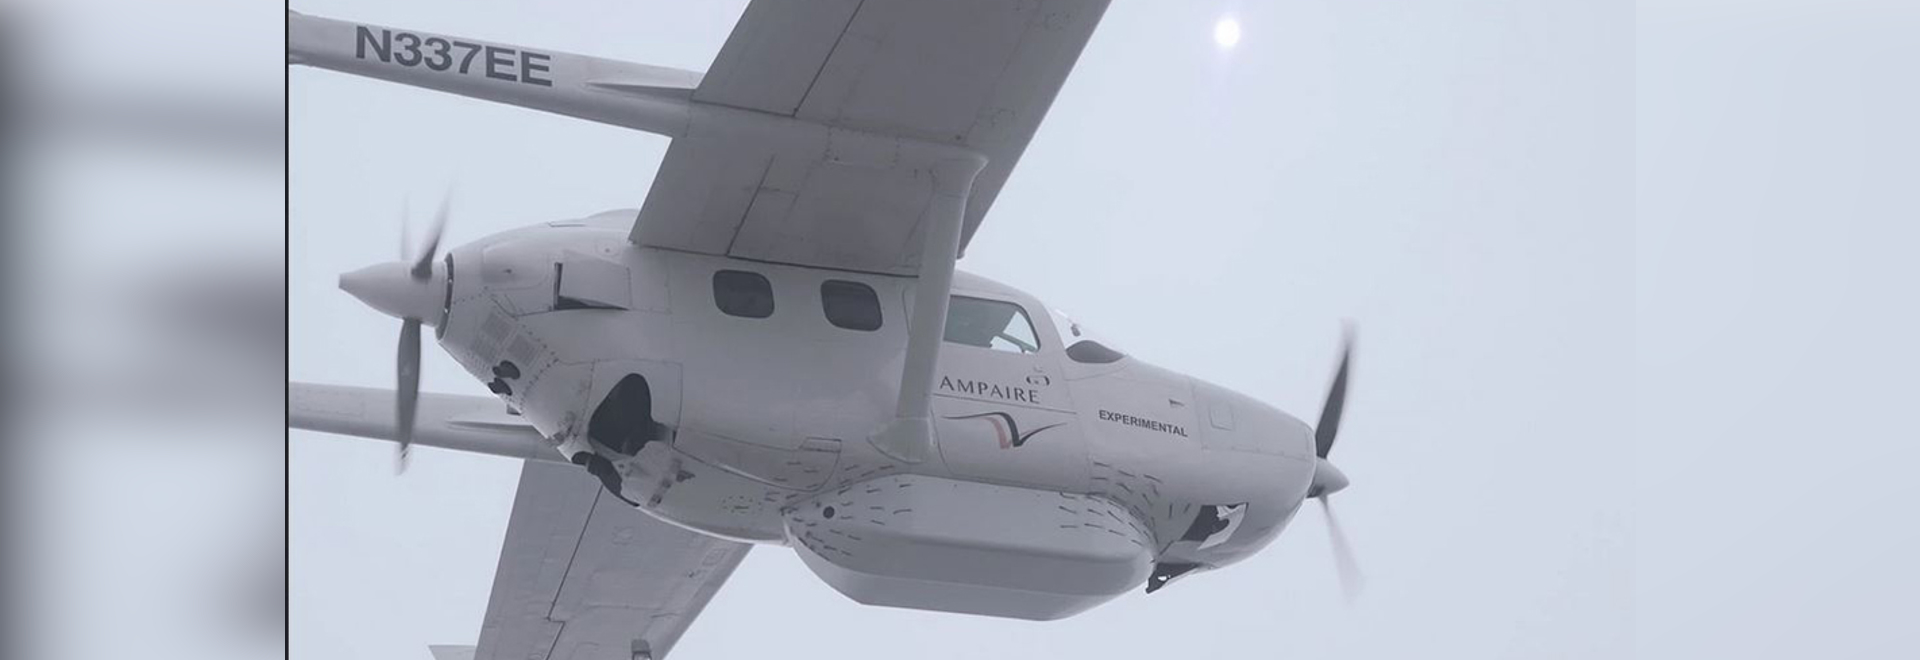 The latest Ampaire hybrid Cessna 337 prototype moved the battery pack to a separate pod slung beneath the aircraft.